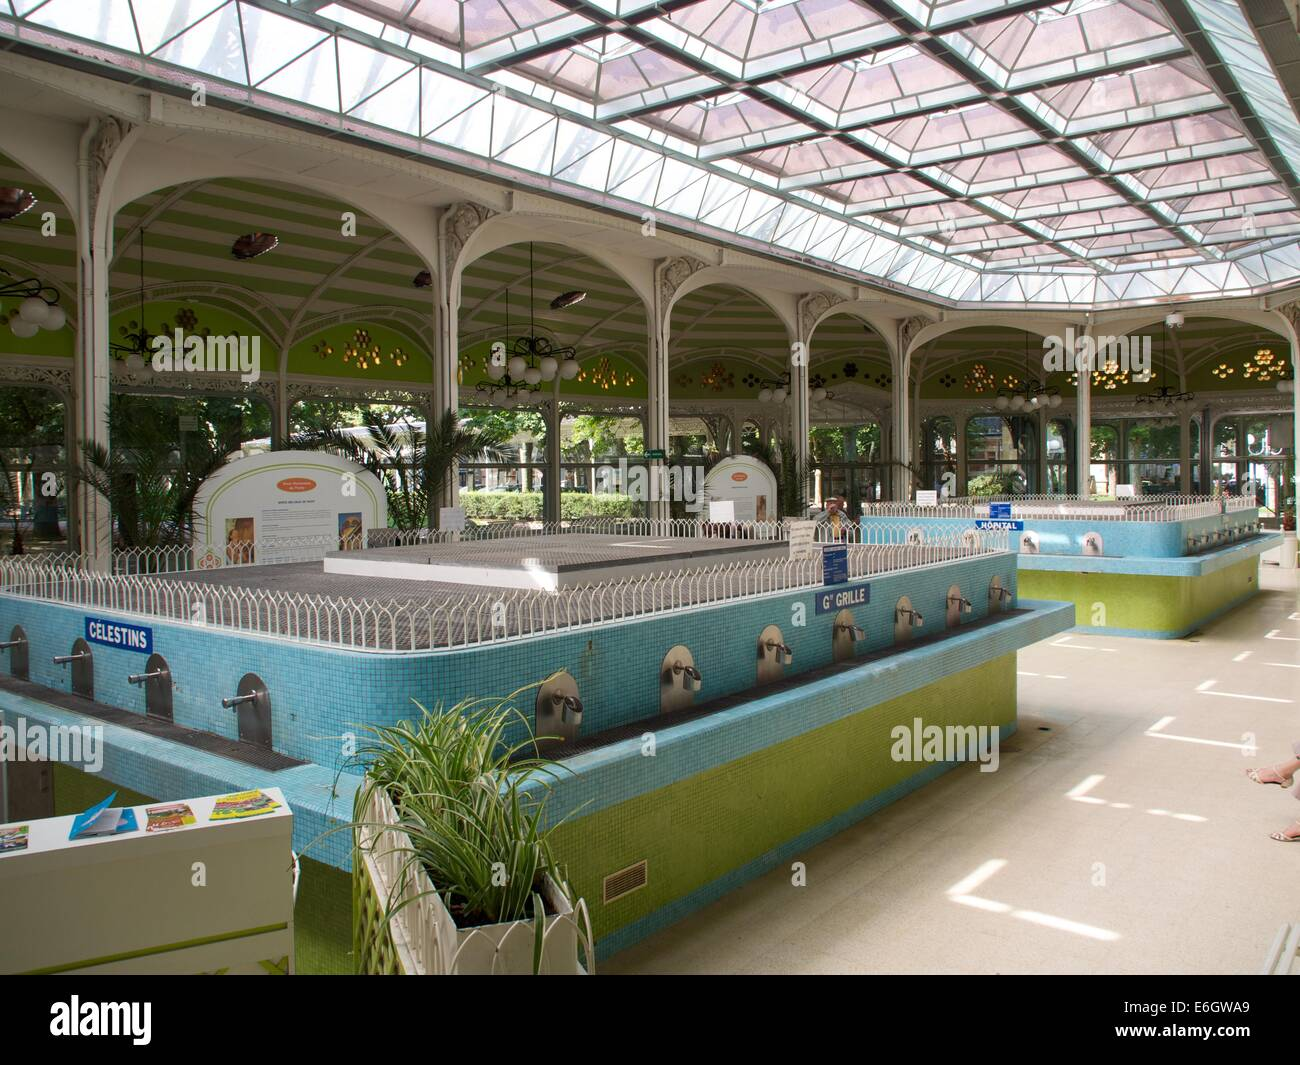 Fountain of celestine spring in thermal spa and resort of Vichy, Auvergne, France, Europe Stock Photo